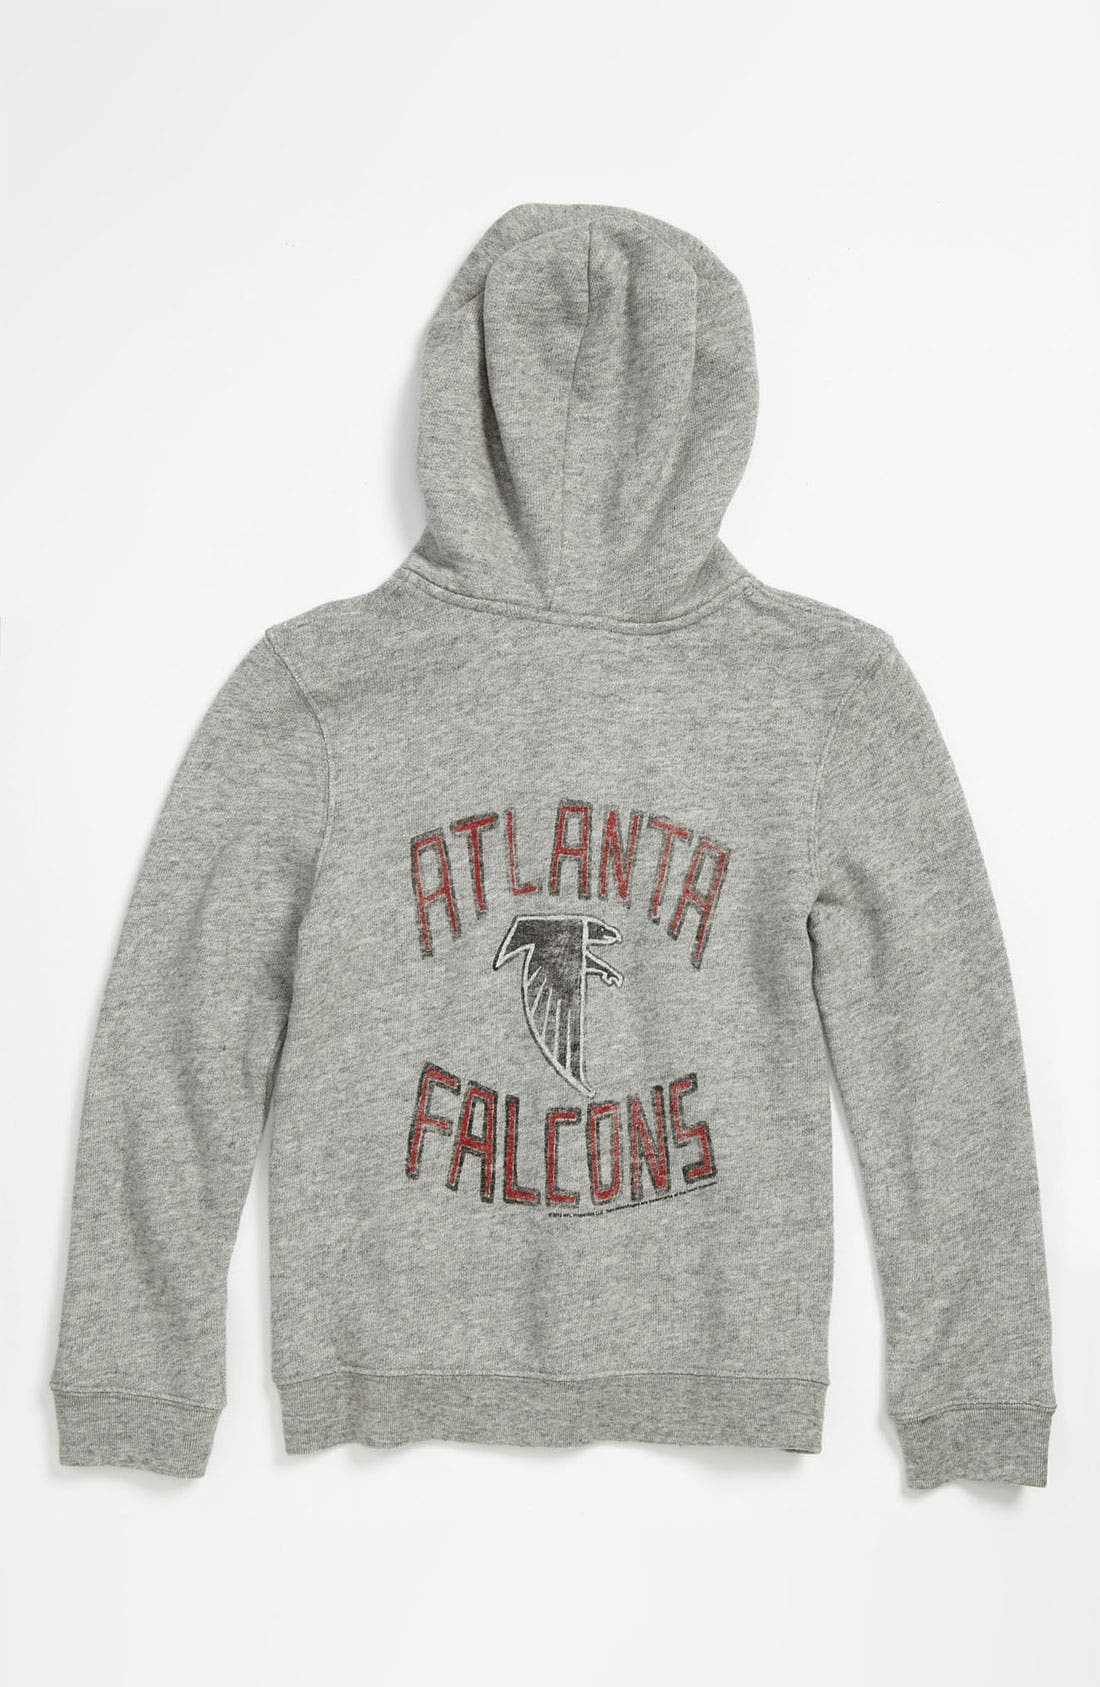 Alternate Image 1 Selected - Junk Food 'Atlanta Falcons' Hoodie (Little Boys & Big Boys)